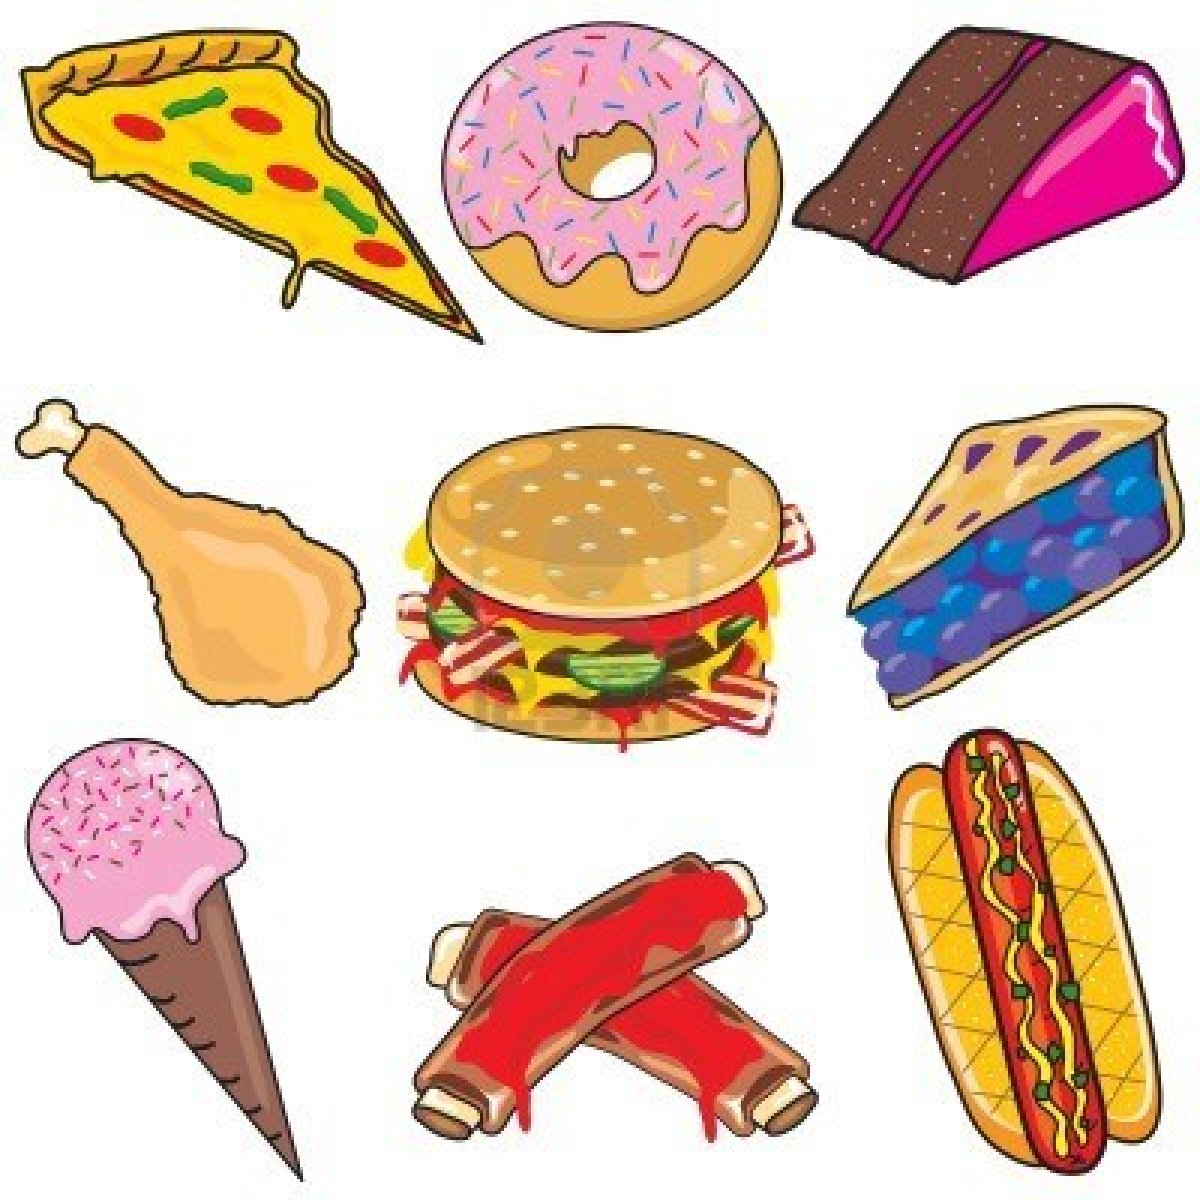 20 food clipart clip art transparent download Food clip art - ClipartFest clip art transparent download